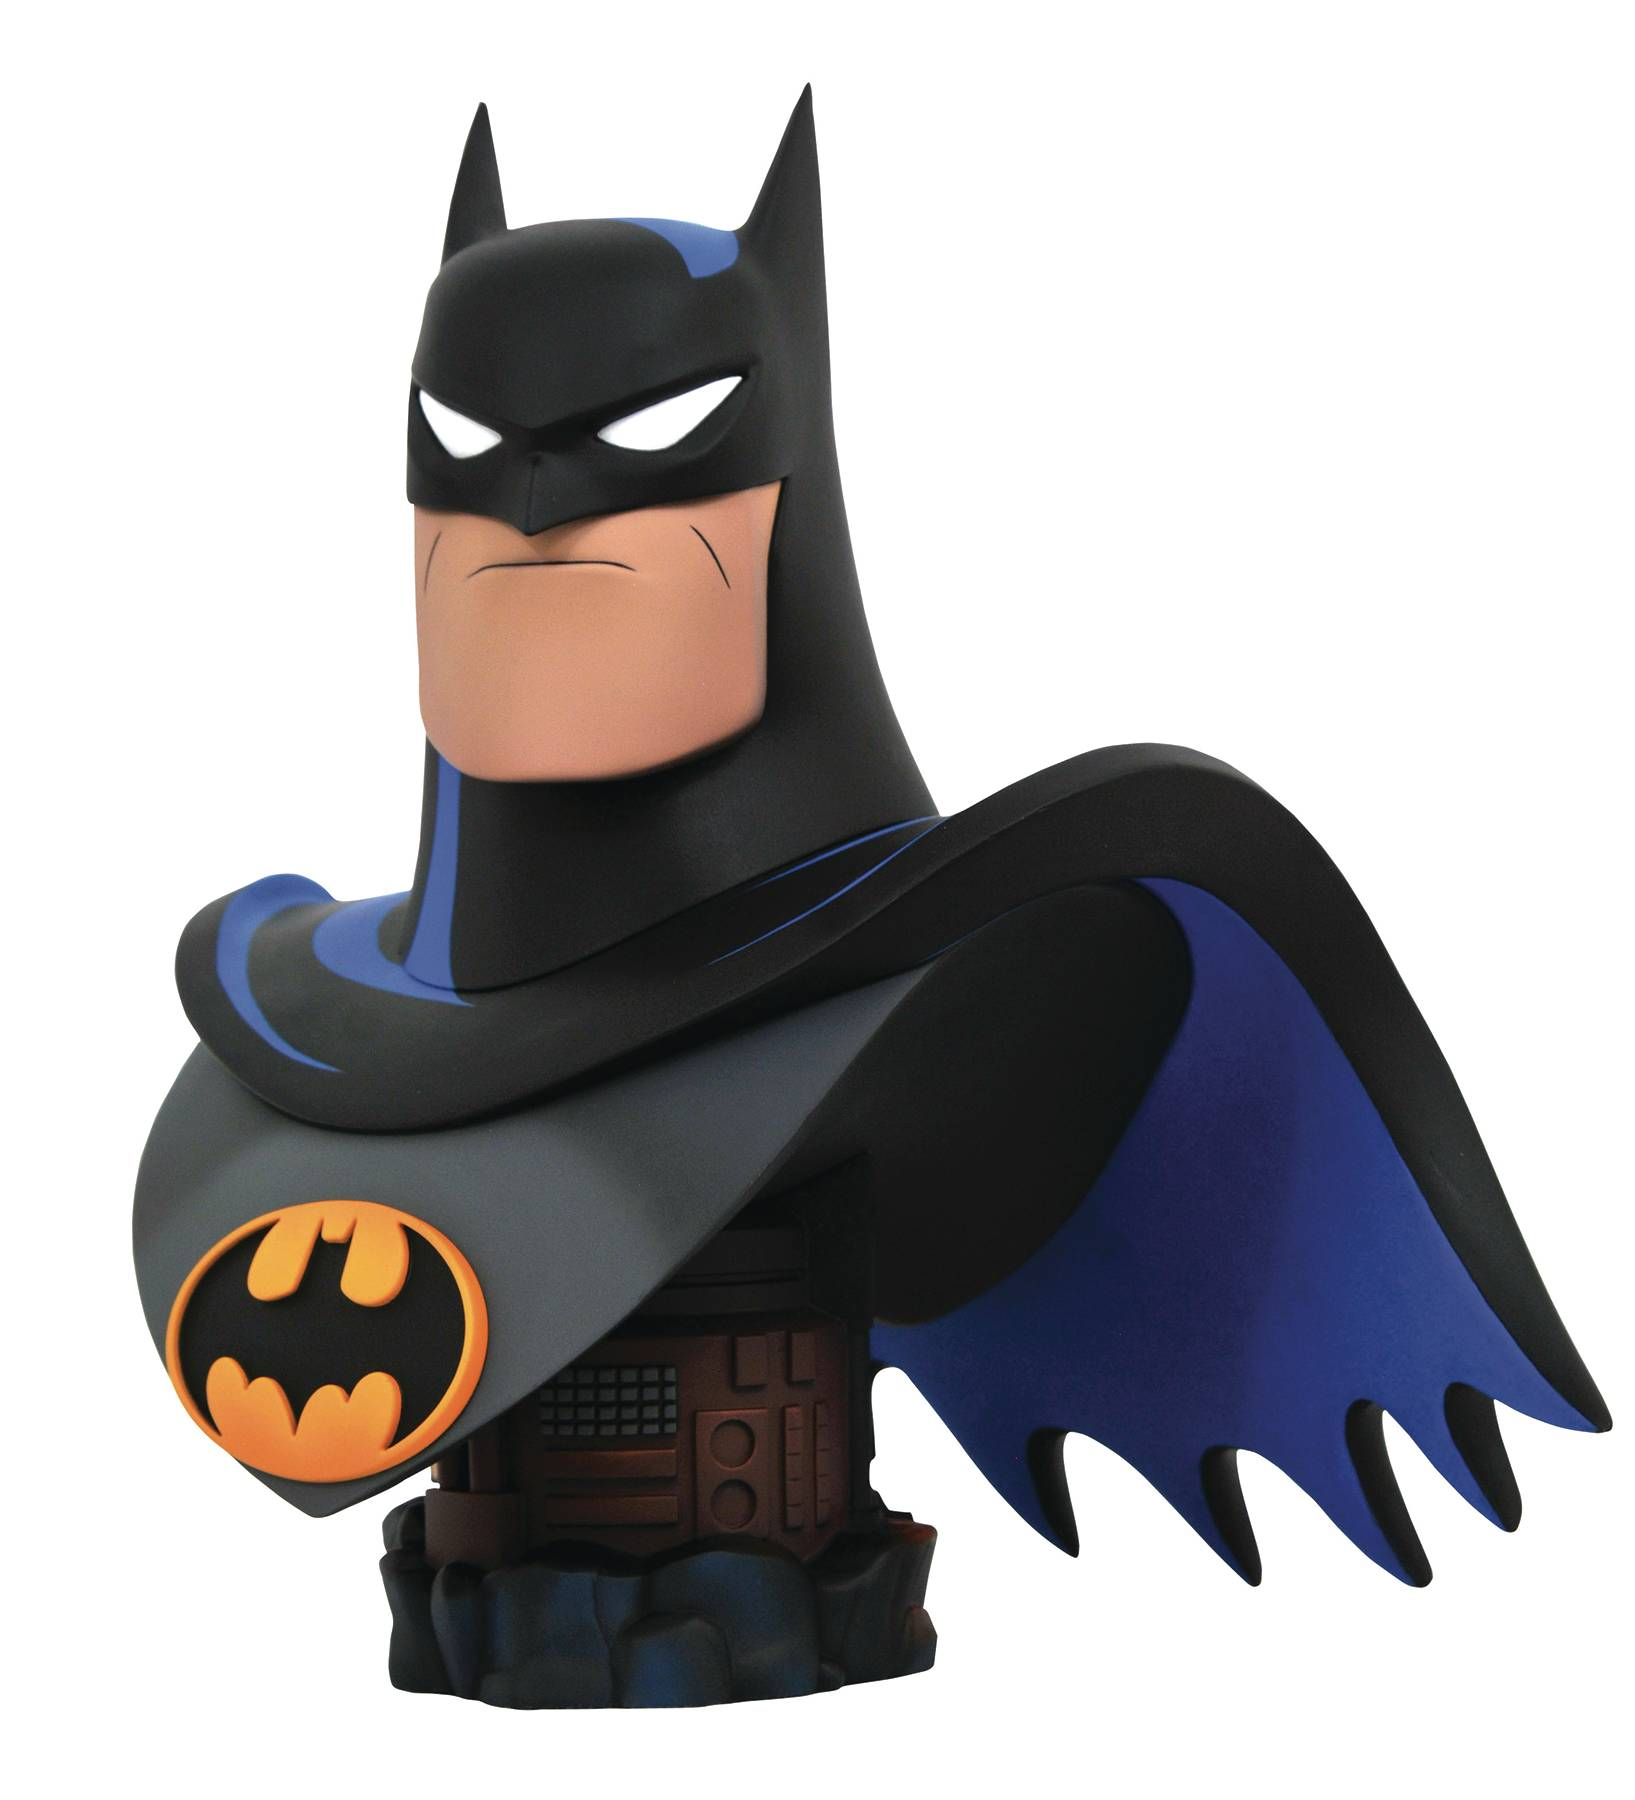 Pre-Order Diamond DC Comics Batman BAS Legends in 3D Bust